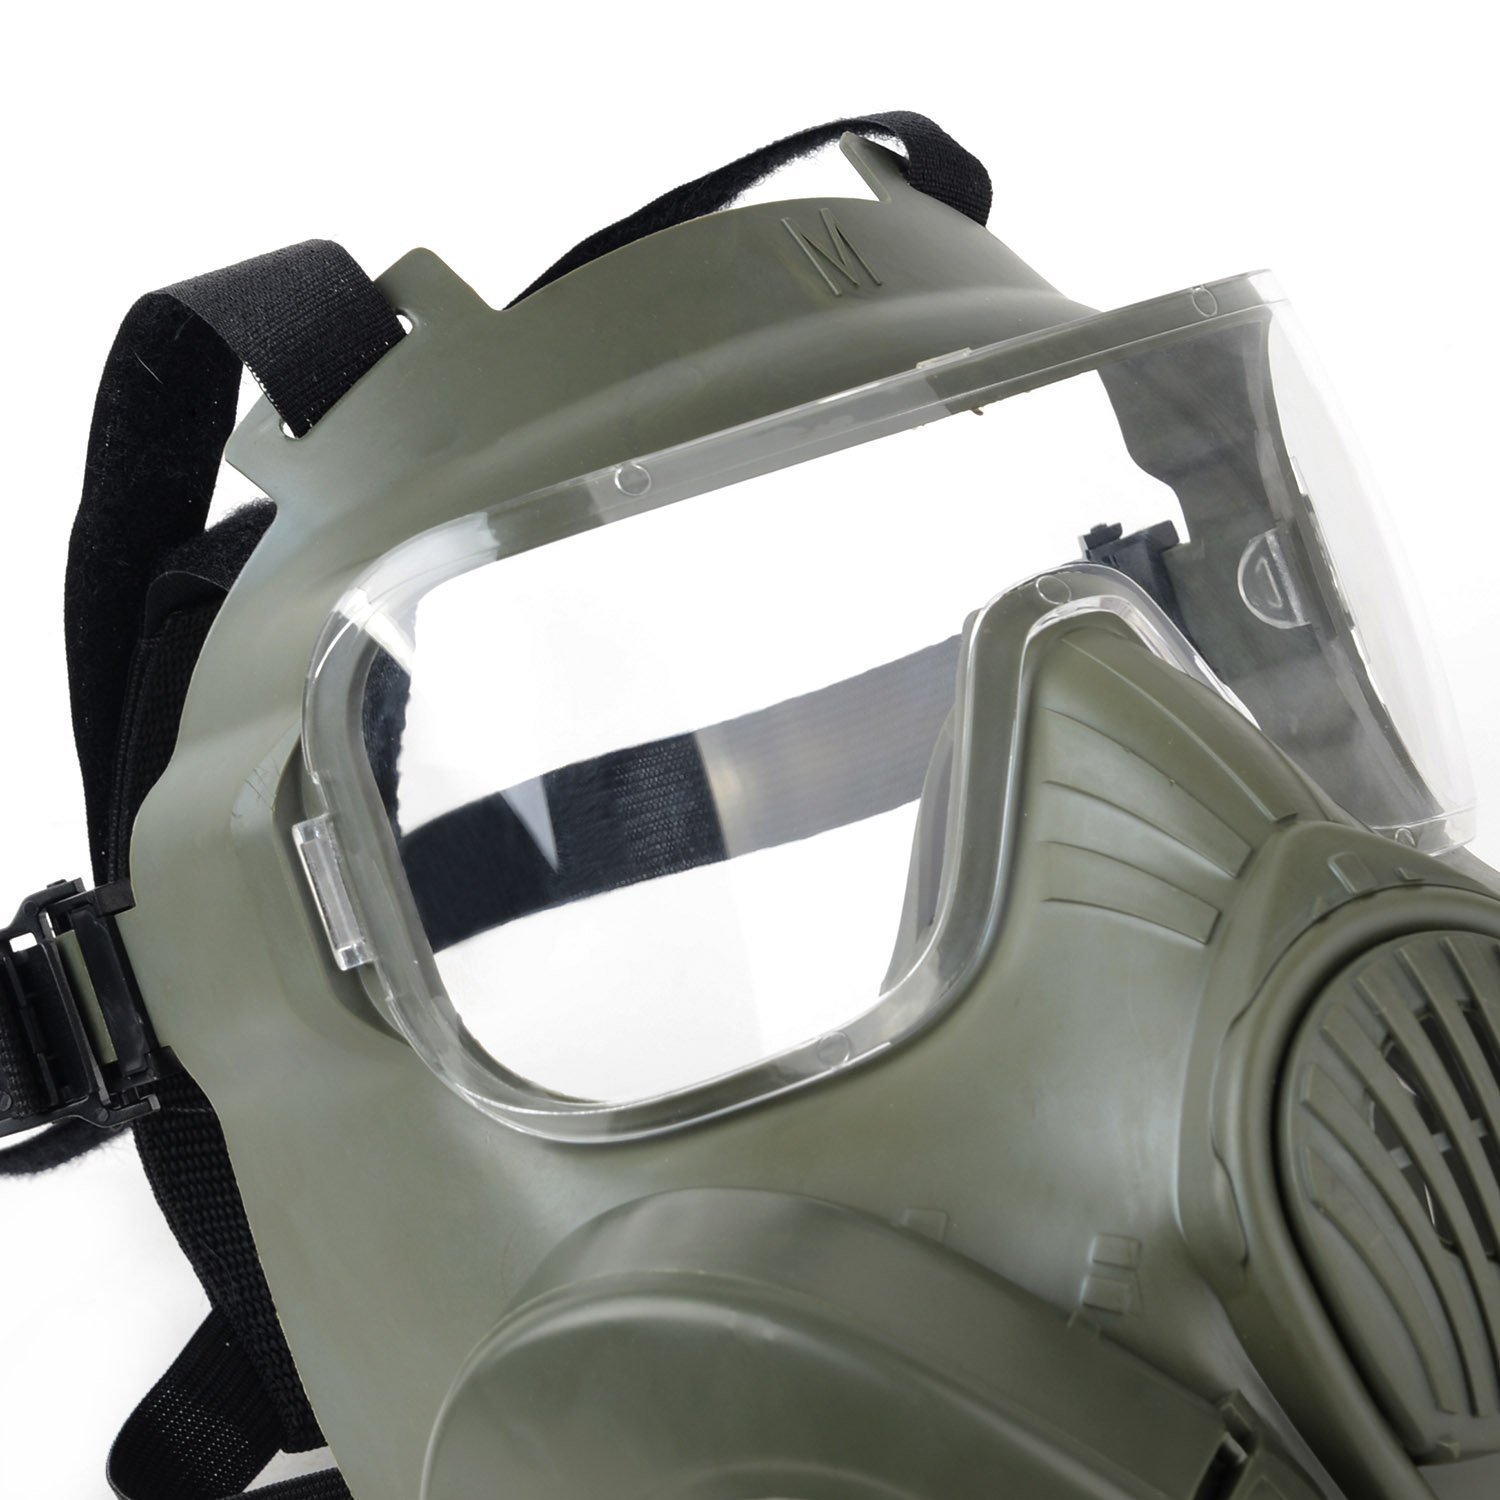 Back To Search Resultshome Sunny Airsoft & Paintball Sports Cs Pro Full Face Mask With Safety Metal Mesh Goggles Protection Pretty And Colorful